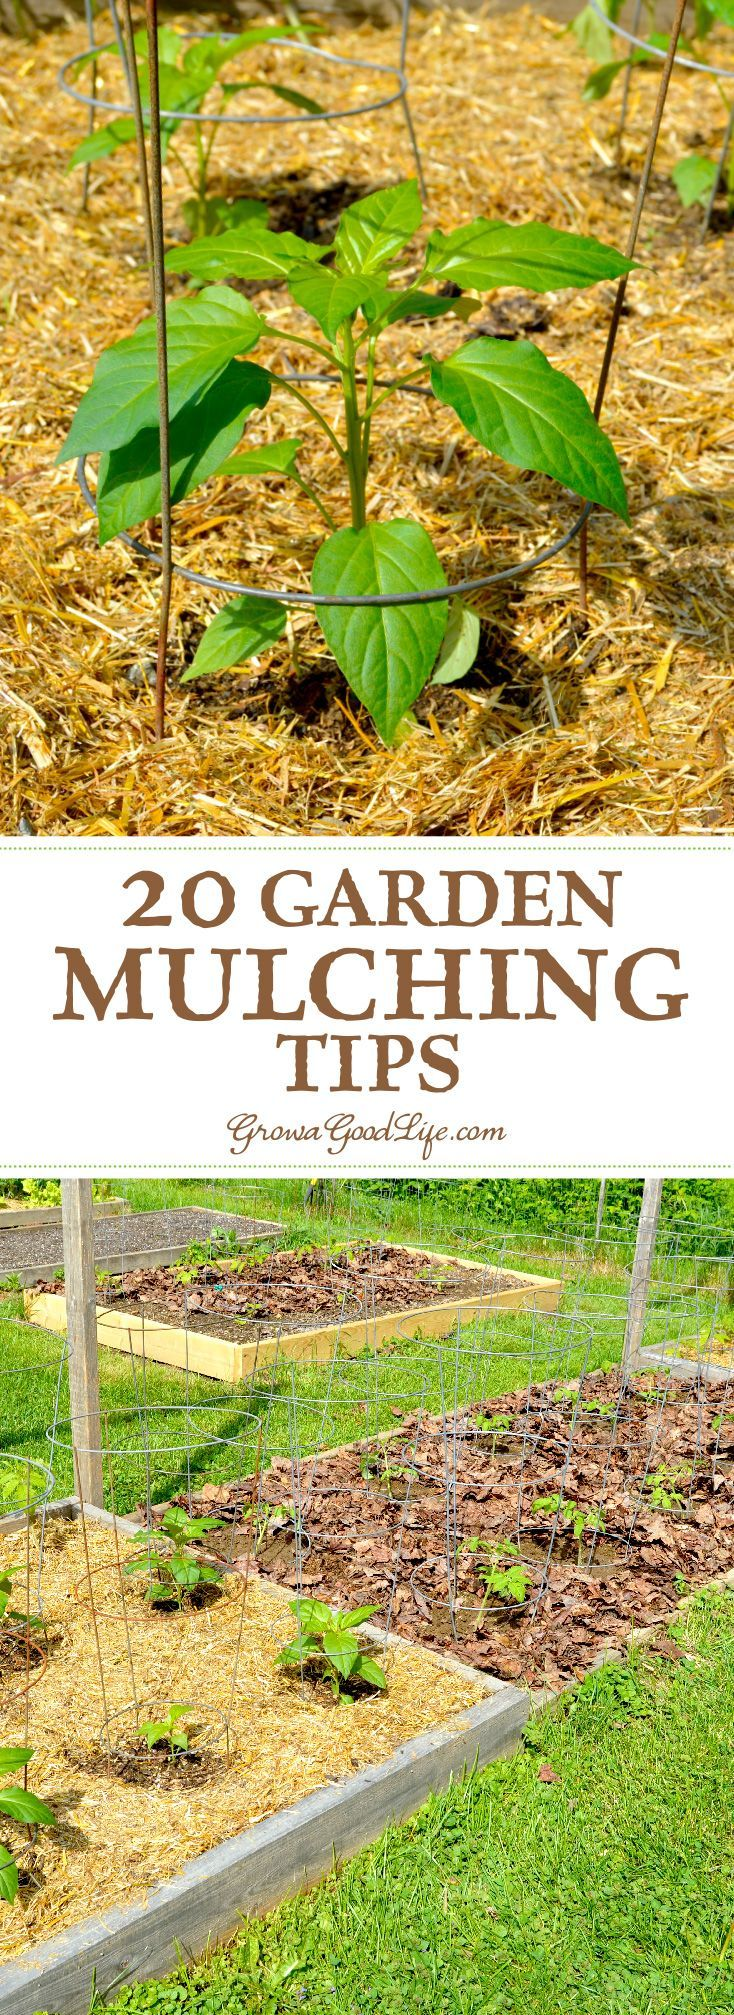 1000 images about gardening for food on pinterest for Gardening tips